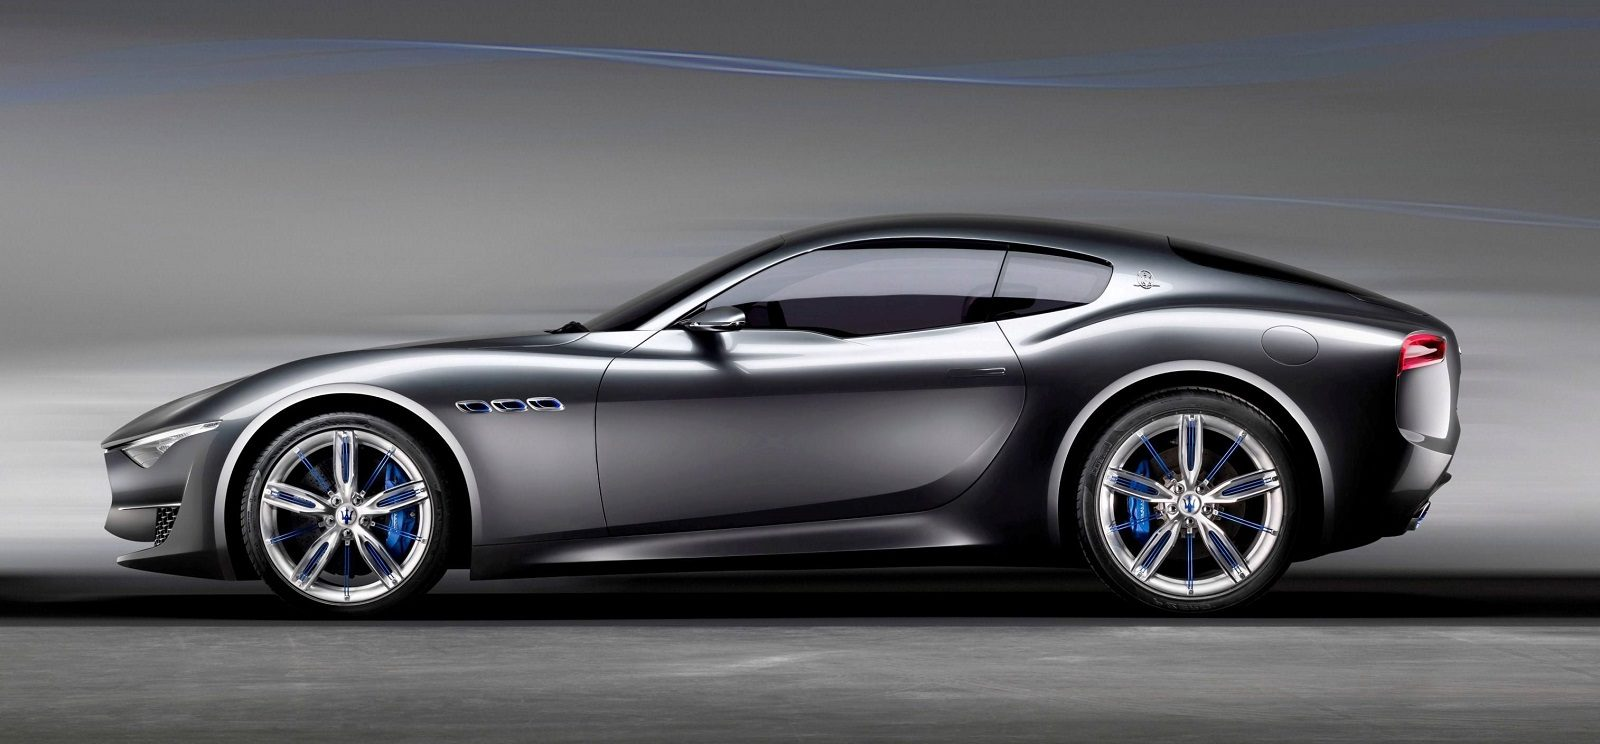 Alfa Romeo Maserati Jeep And Fiat Are Preparing A Number Of Electric Cars